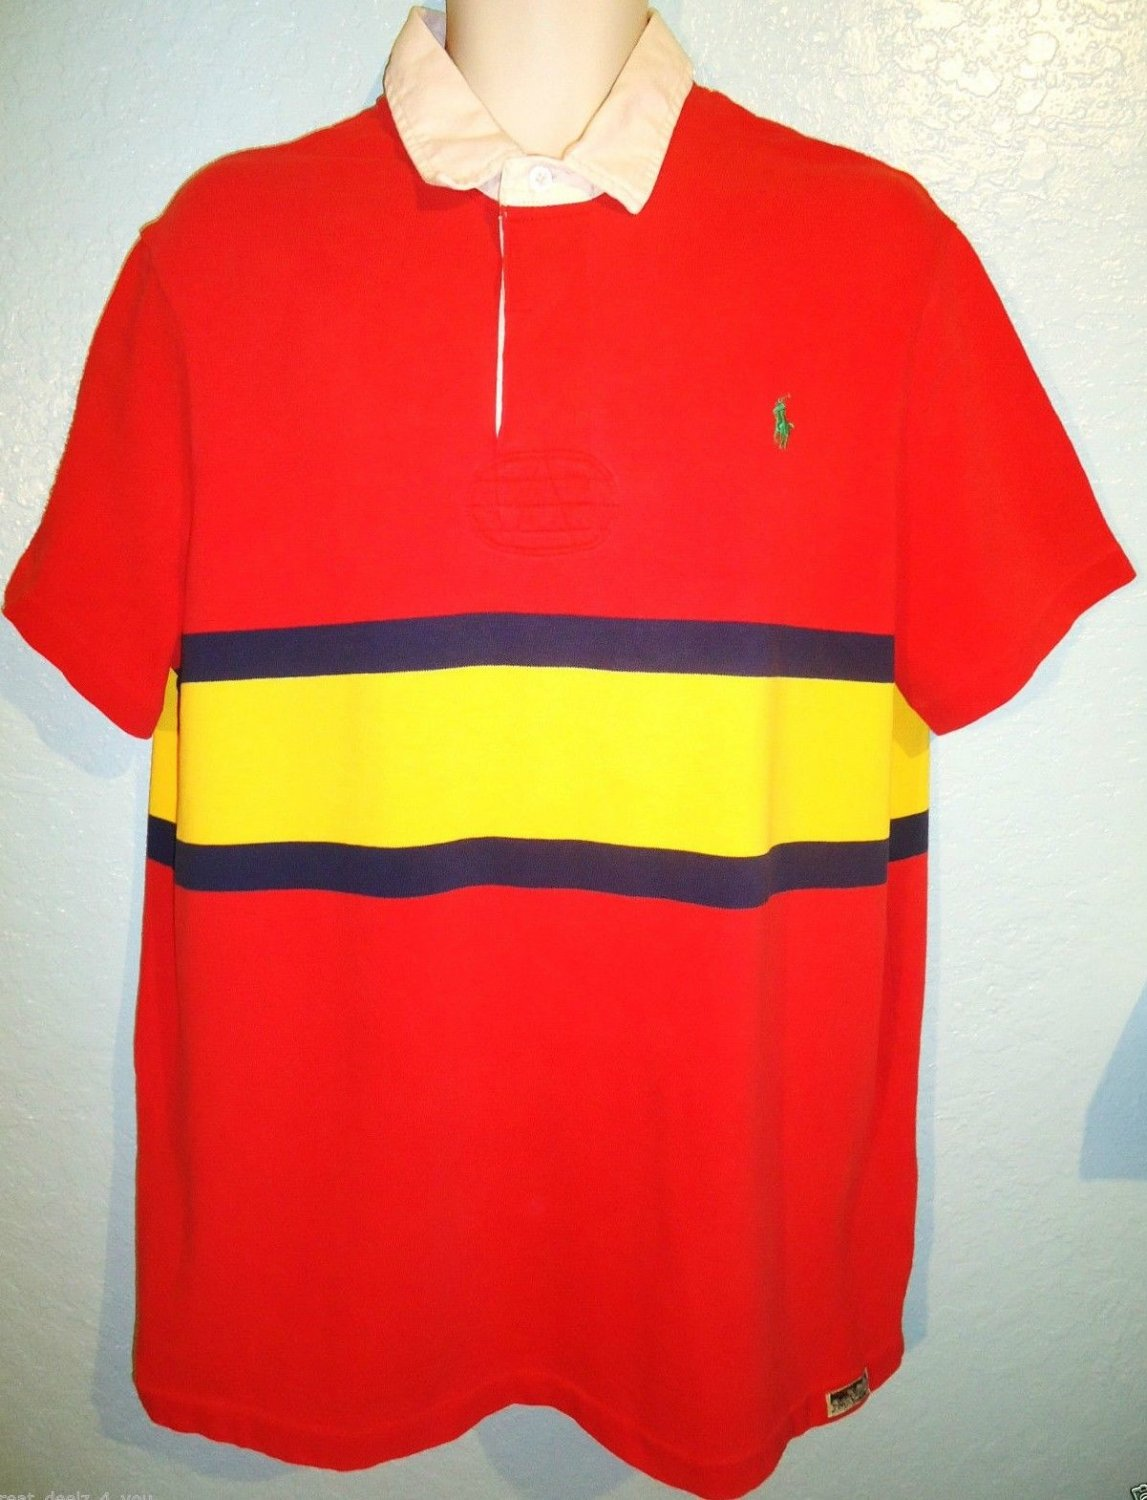 RALPH LAUREN - XL - RED - YELLOW - RUGBY - POLO - SHIRT - RRL - NEW - CUSTOM FIT